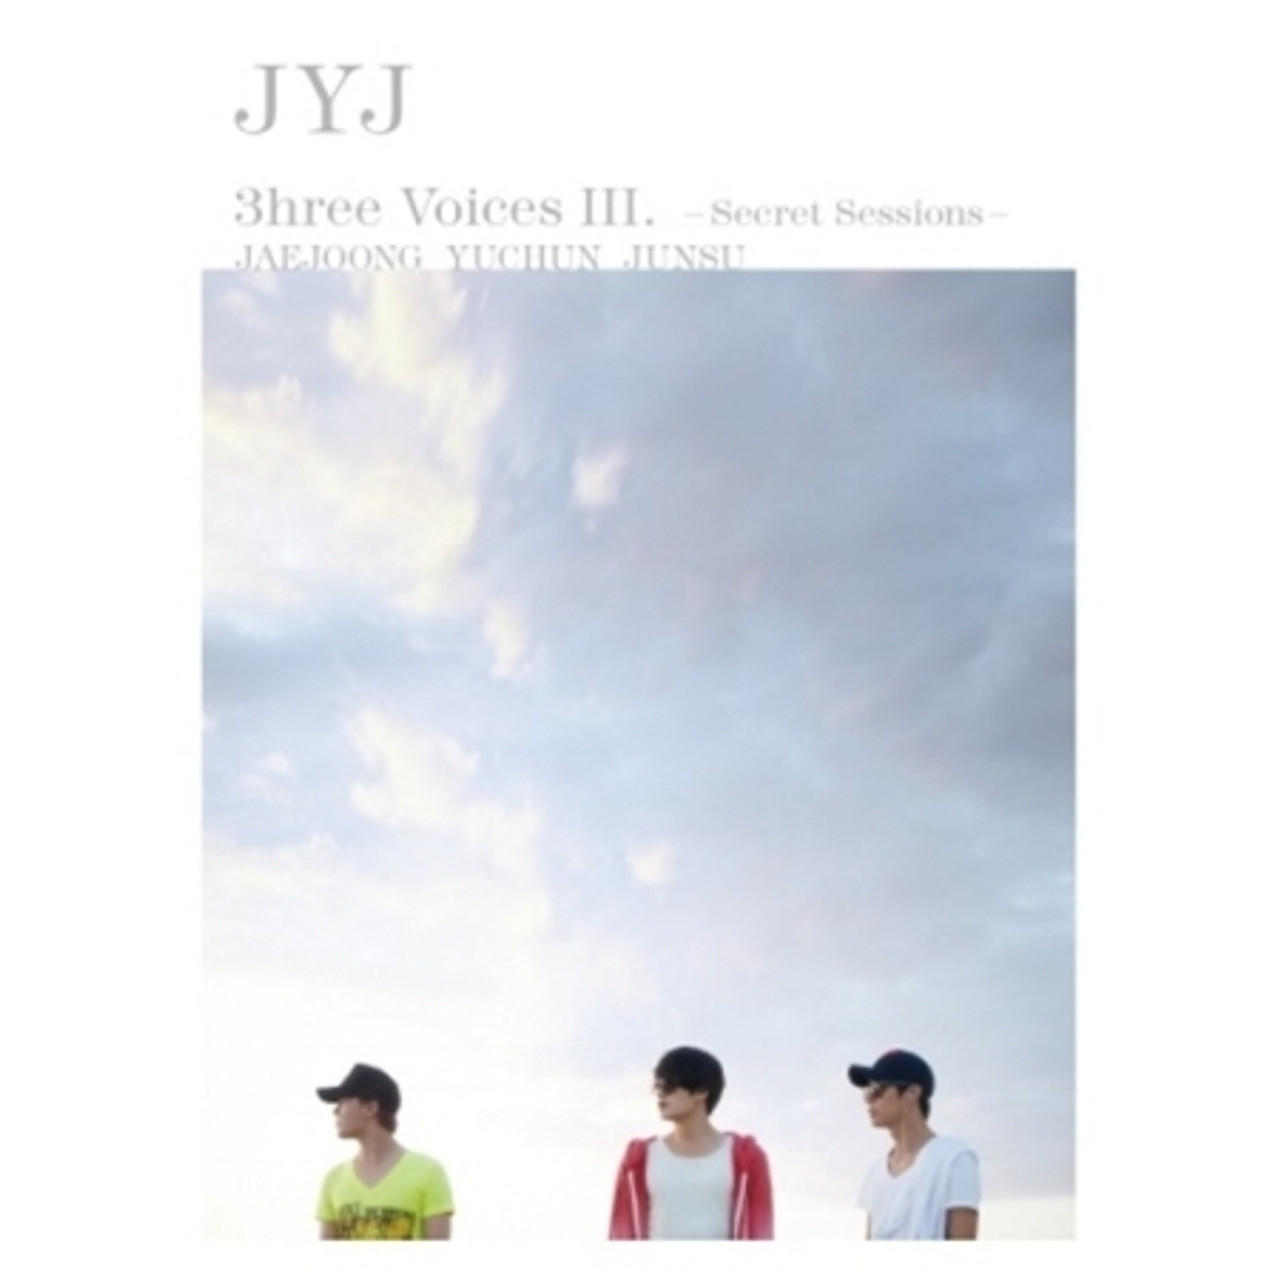 JYJ - 3hree Voices III / Secret Sessions (2DVD+Poster On Package)